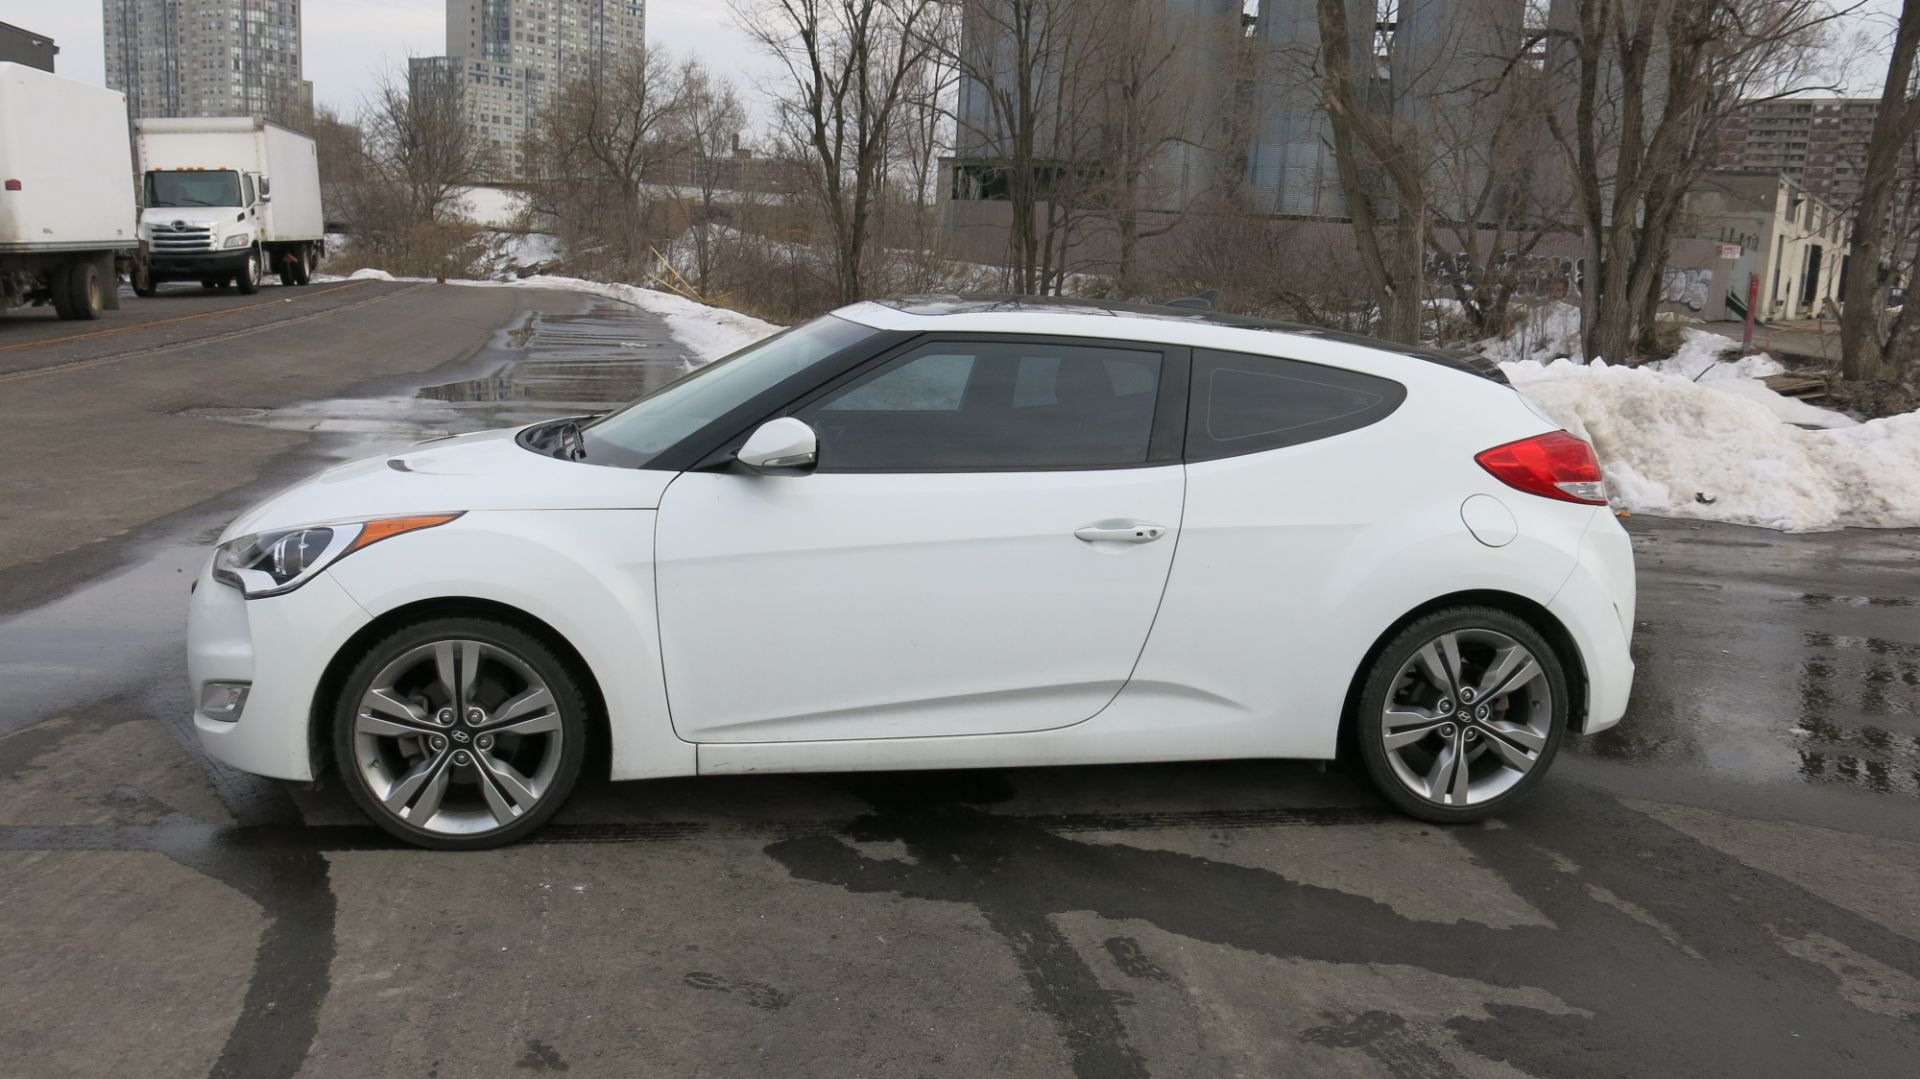 Lot 219 - 2015, HYUNDAI, VELOSTER, 2 DOOR HATCHBACK, SUNROOF, 64,150 KMS (LOCATED AT 1-80 MIDWEST ROAD